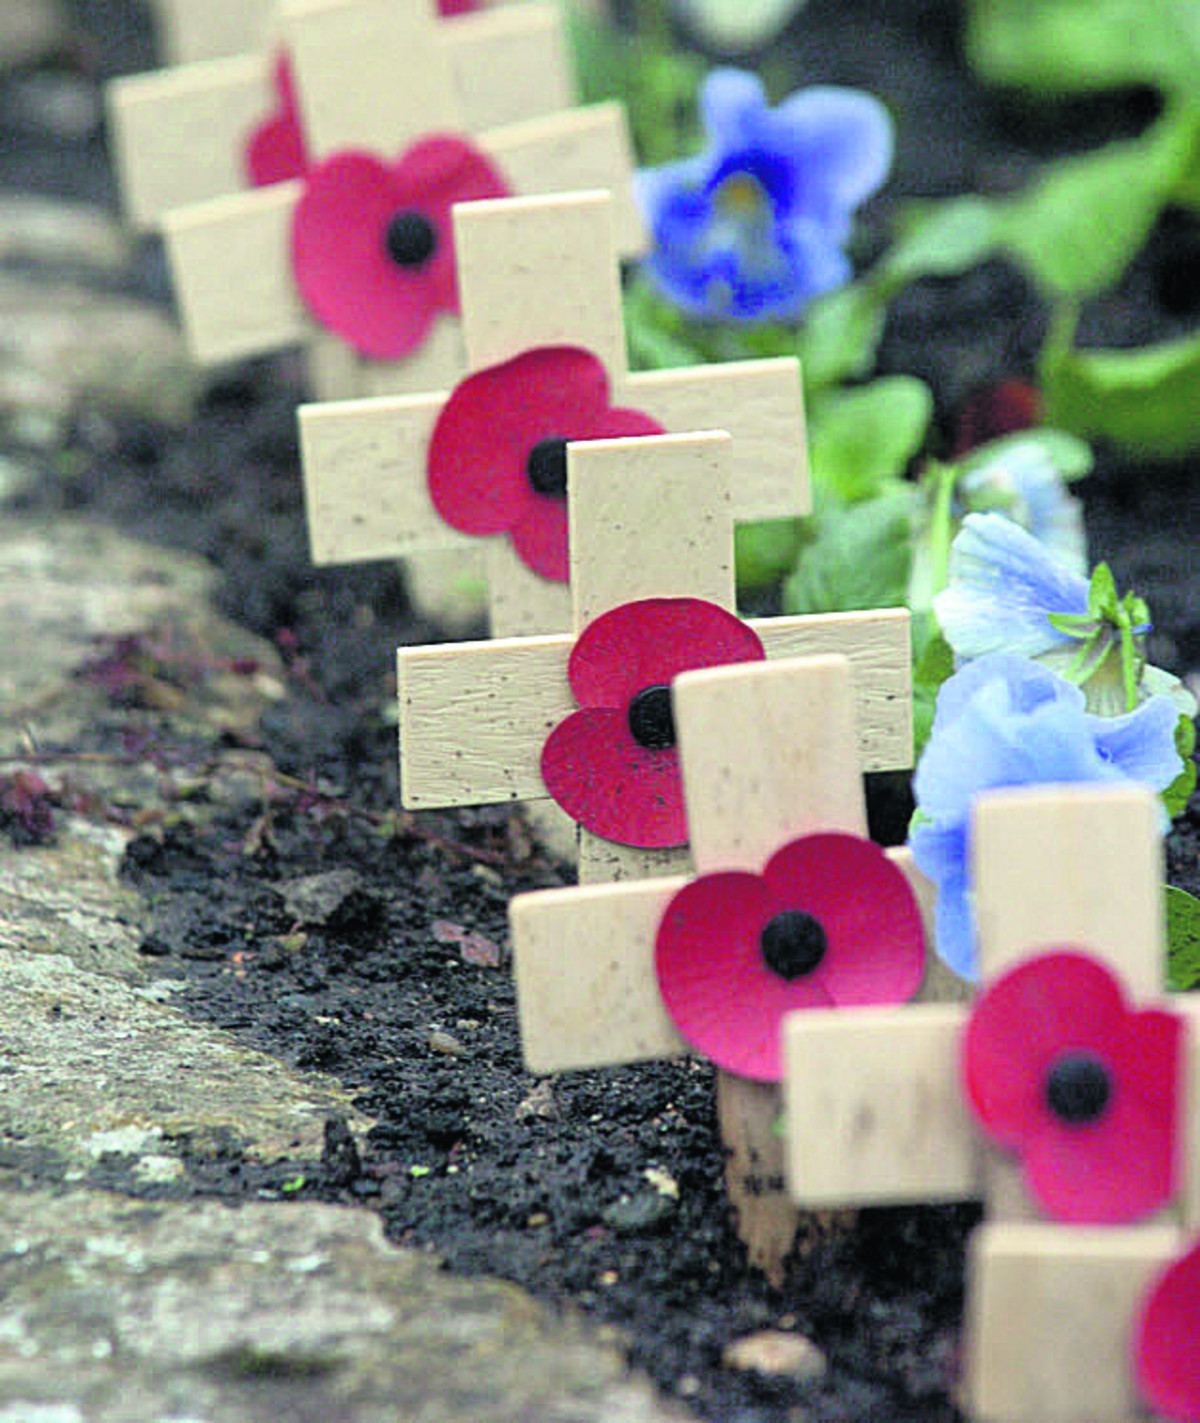 Village to remember war dead on anniversary